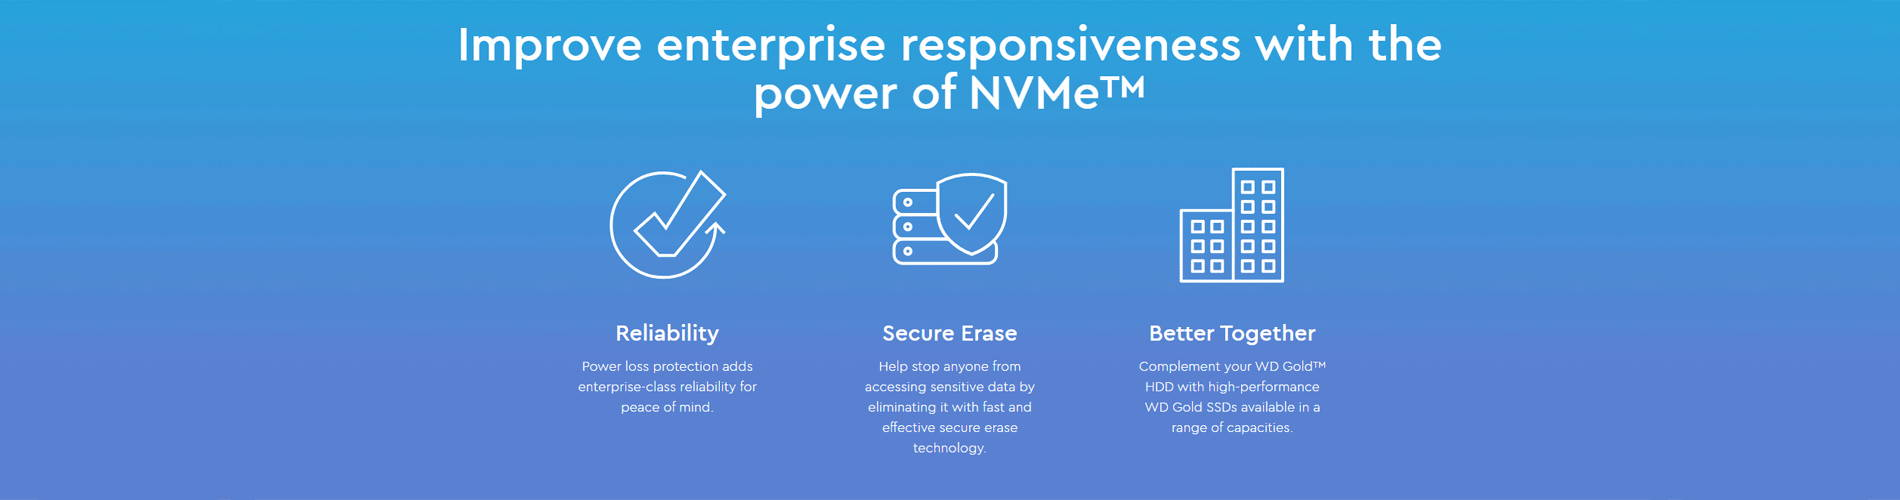 Improve enterprise responsiveness with the power of NVMe